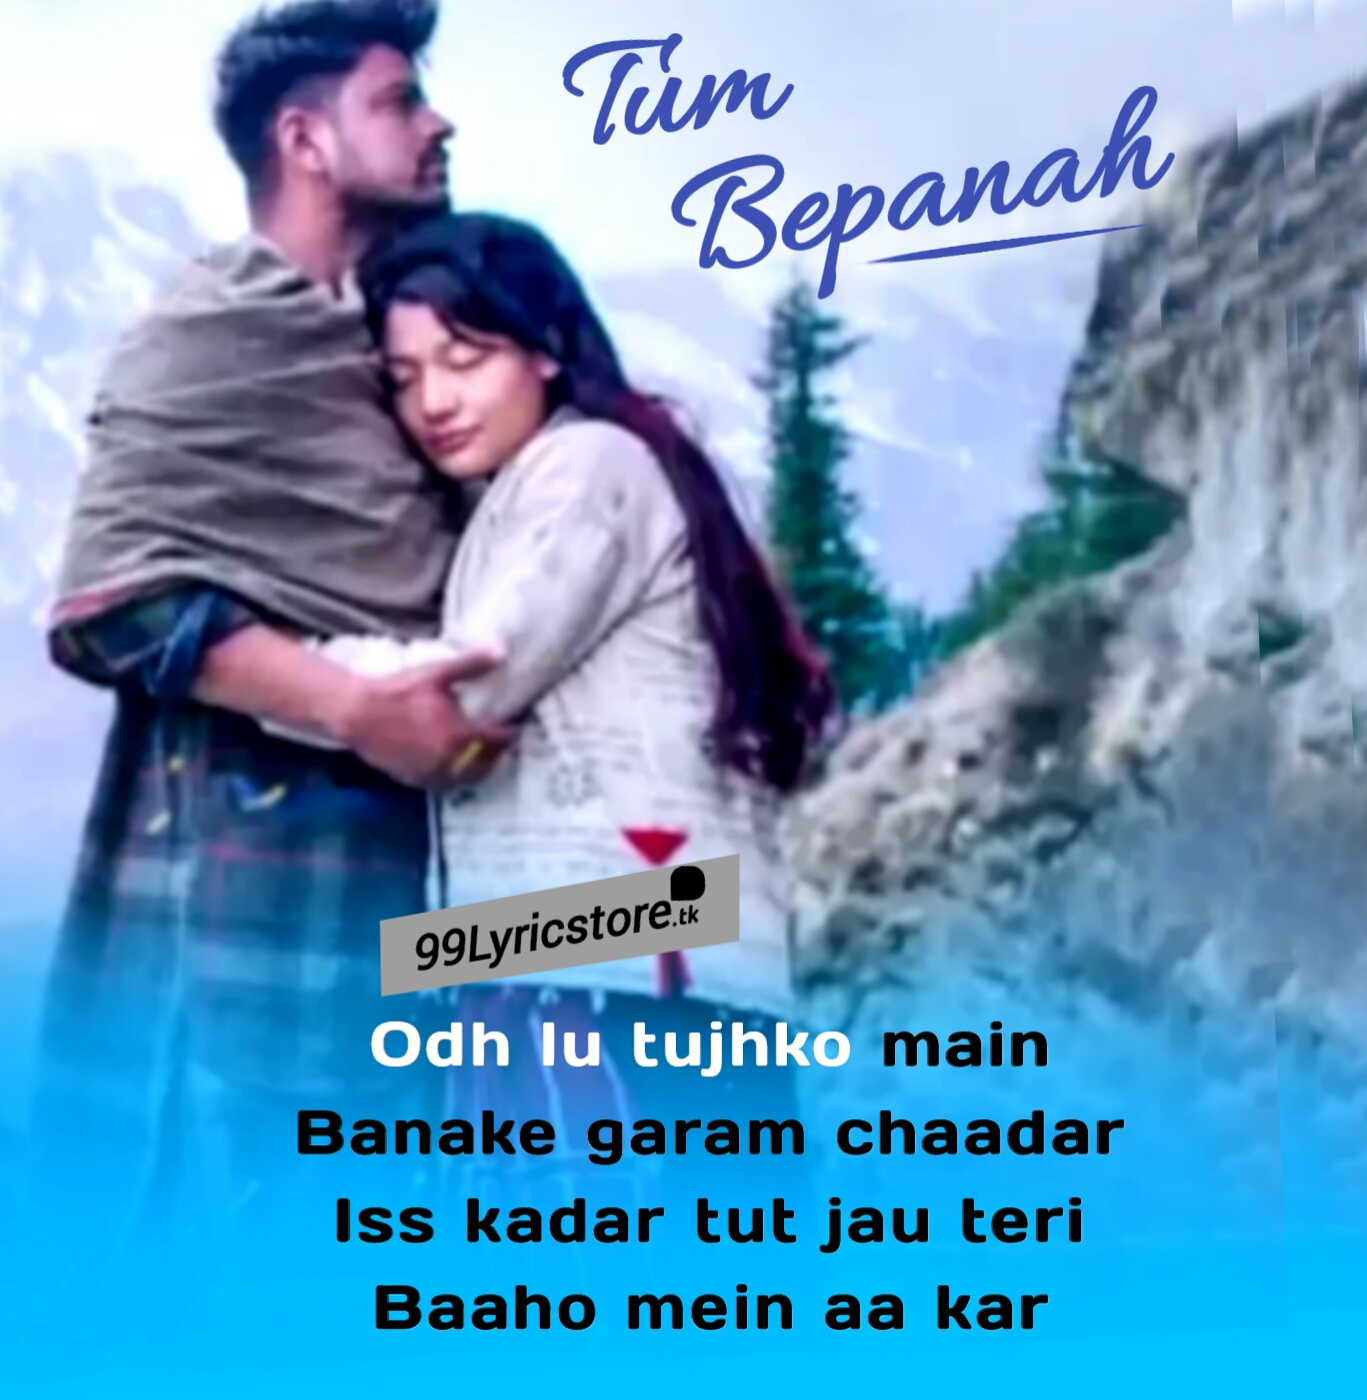 Tum Bepanah Lyrics – Mohit Chauhan, Priyanka Negi | 72 Hours , 72 hours Tum Bepnah Lyrics , Mohit Chauhan Song Tum Bepanah Lyrics , Tum bepnah Song Lyrics , Tum Bepanah  Mohit Chauhan & Priyanka Negi Lyrics , New Song Lyrics 2019